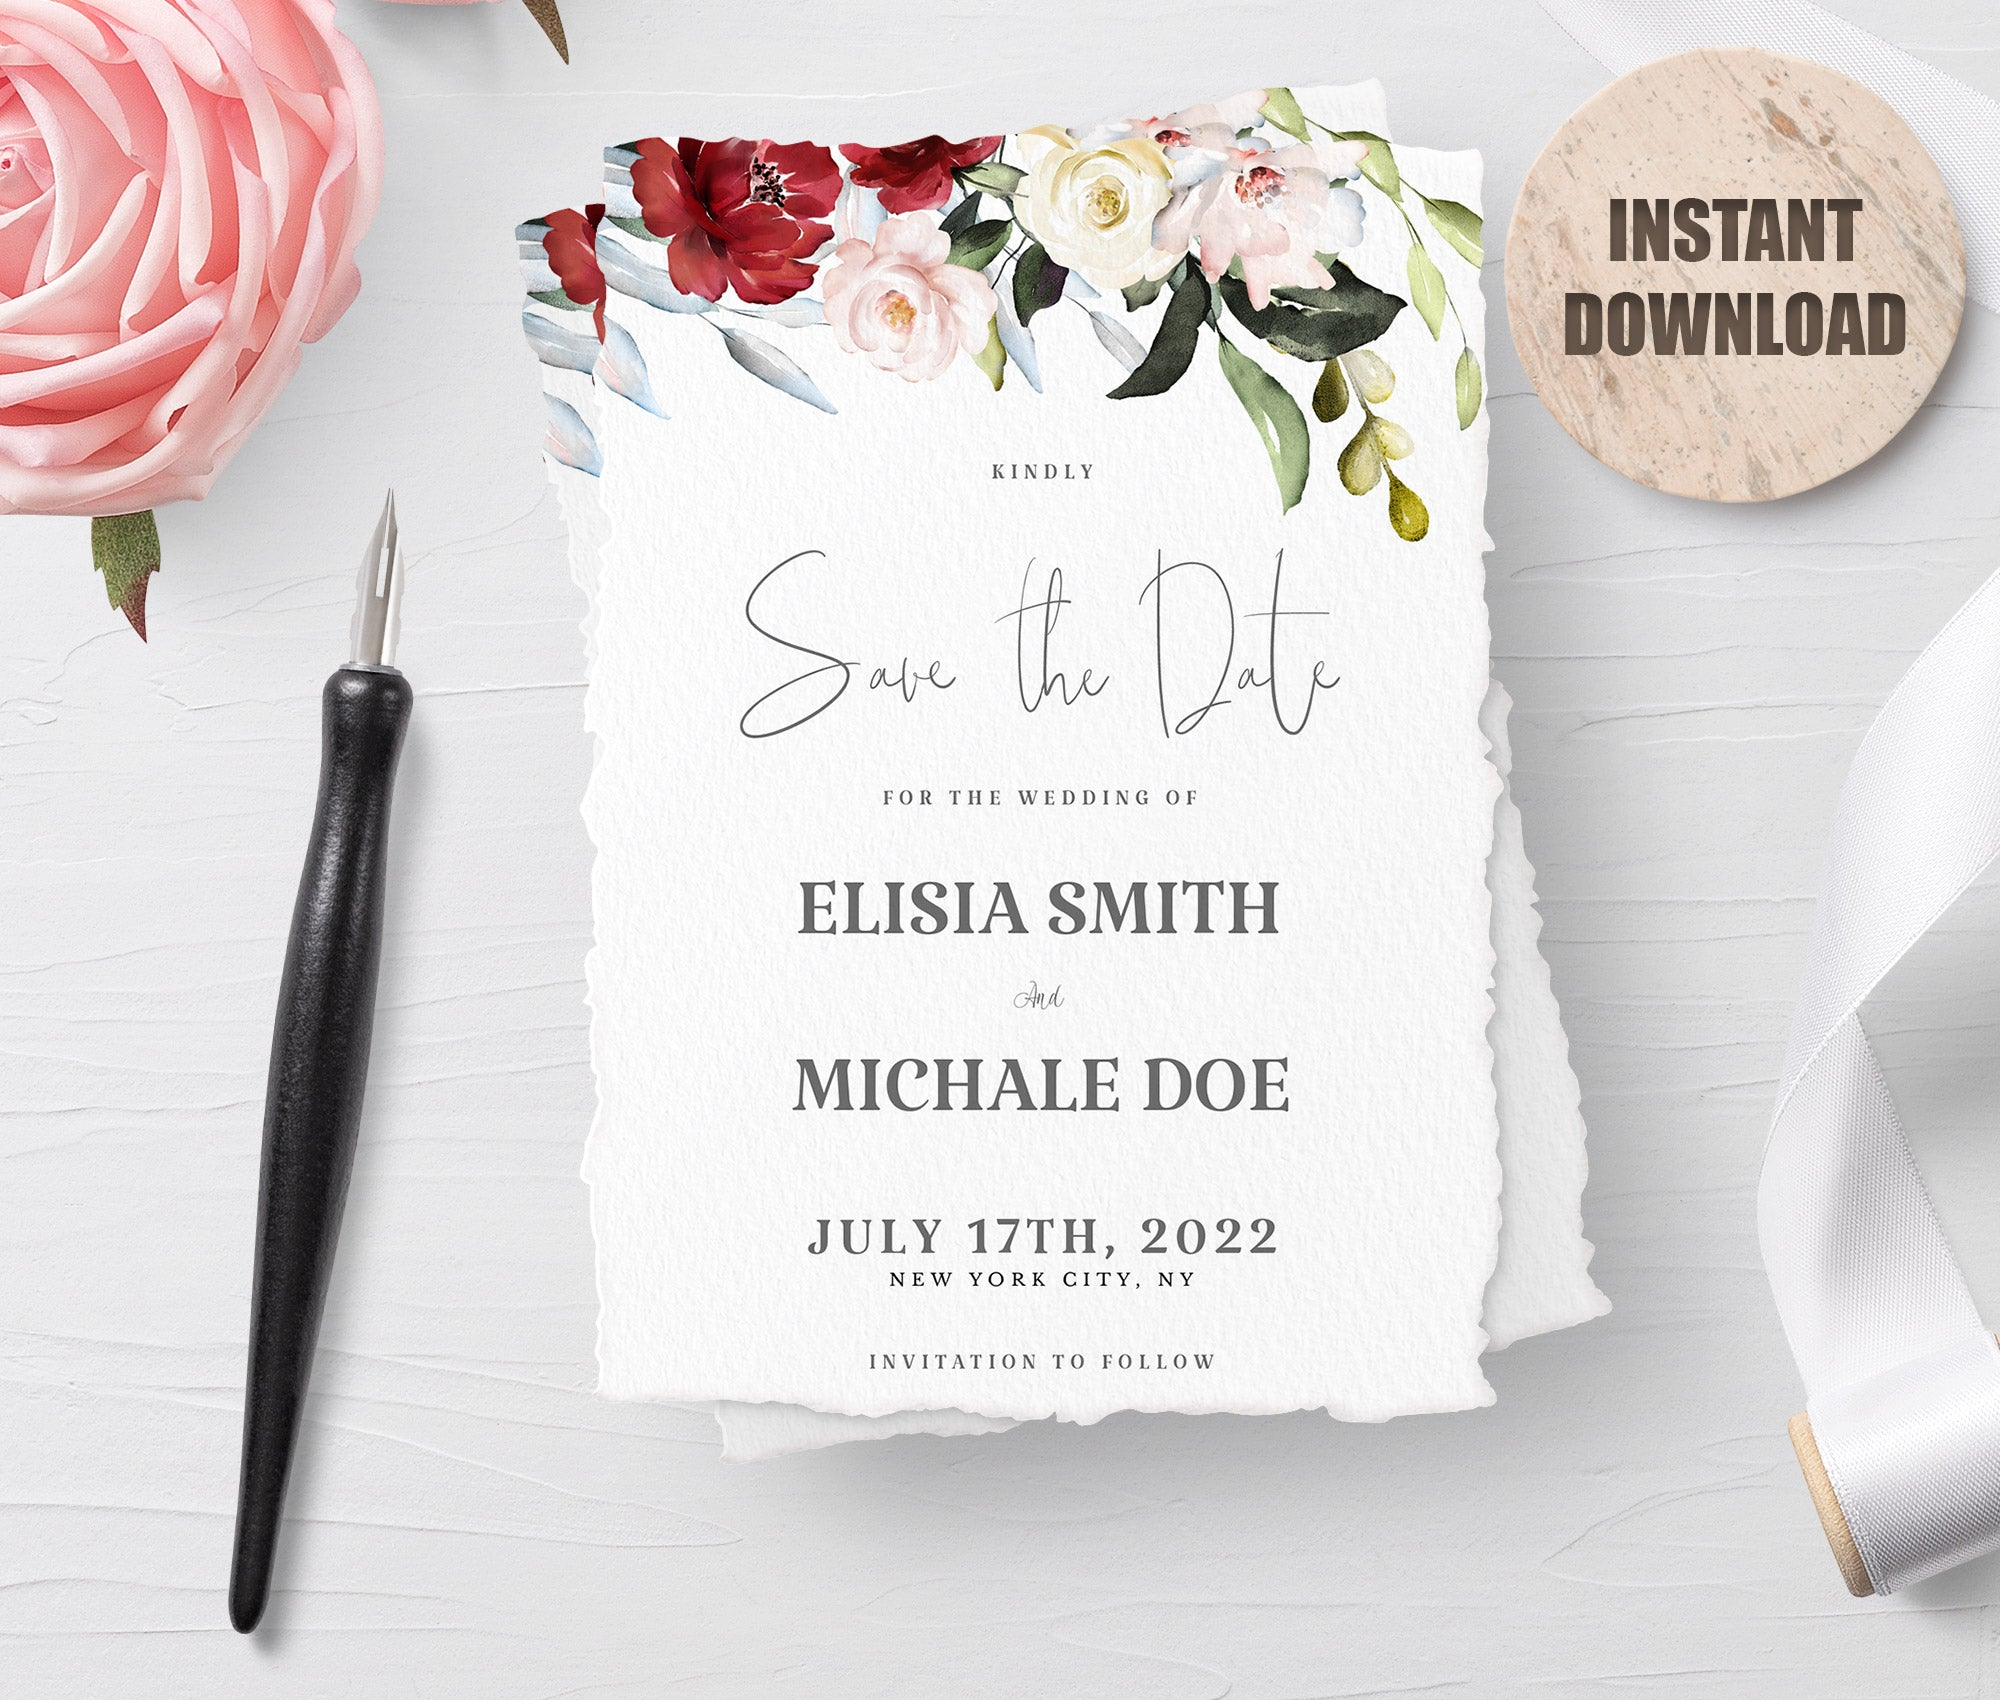 LOVAL Printable Save the Date Card set 2